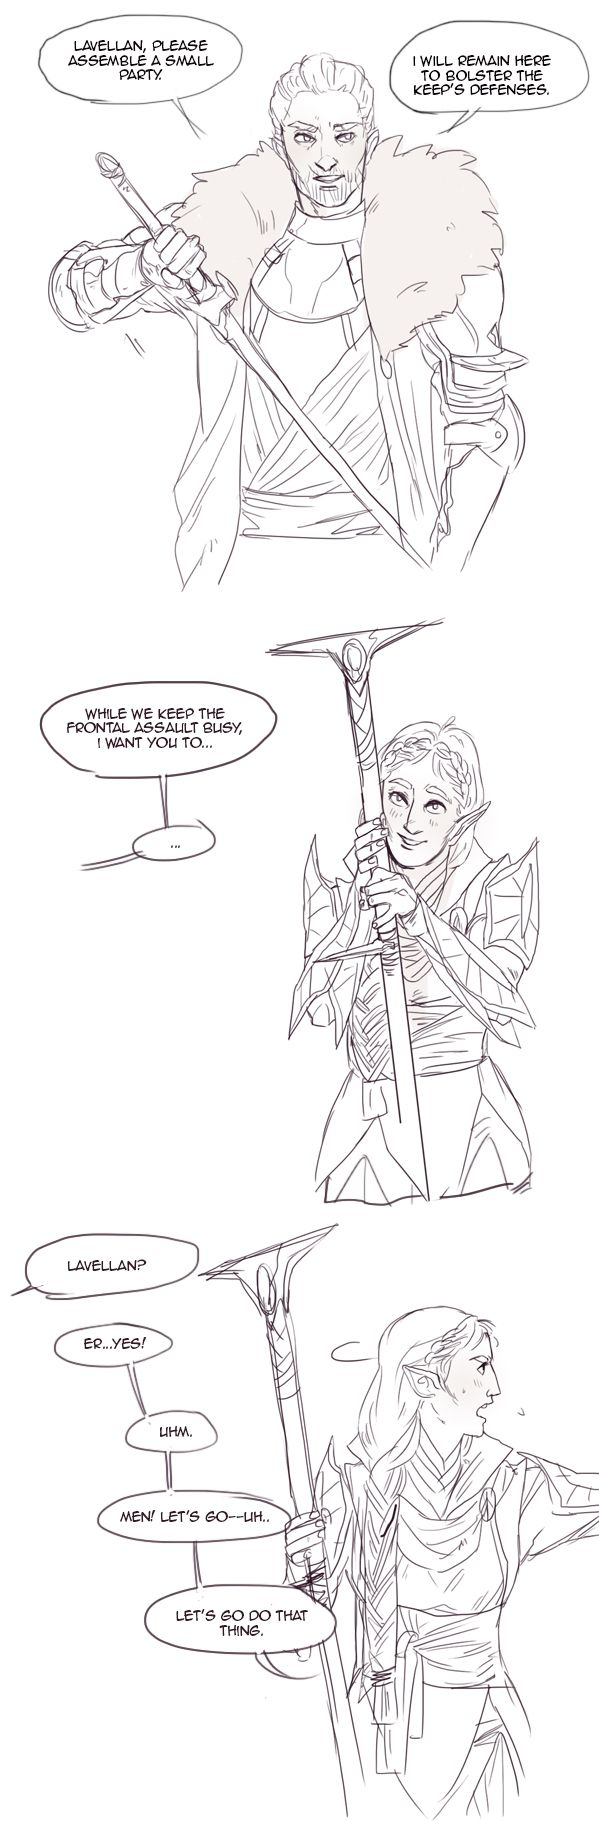 To be fair, he is extremely distracting in the best possible way. WhatwasIdoingohrightbolsteringtheInquisiton. (Cullen x Inquisitor)